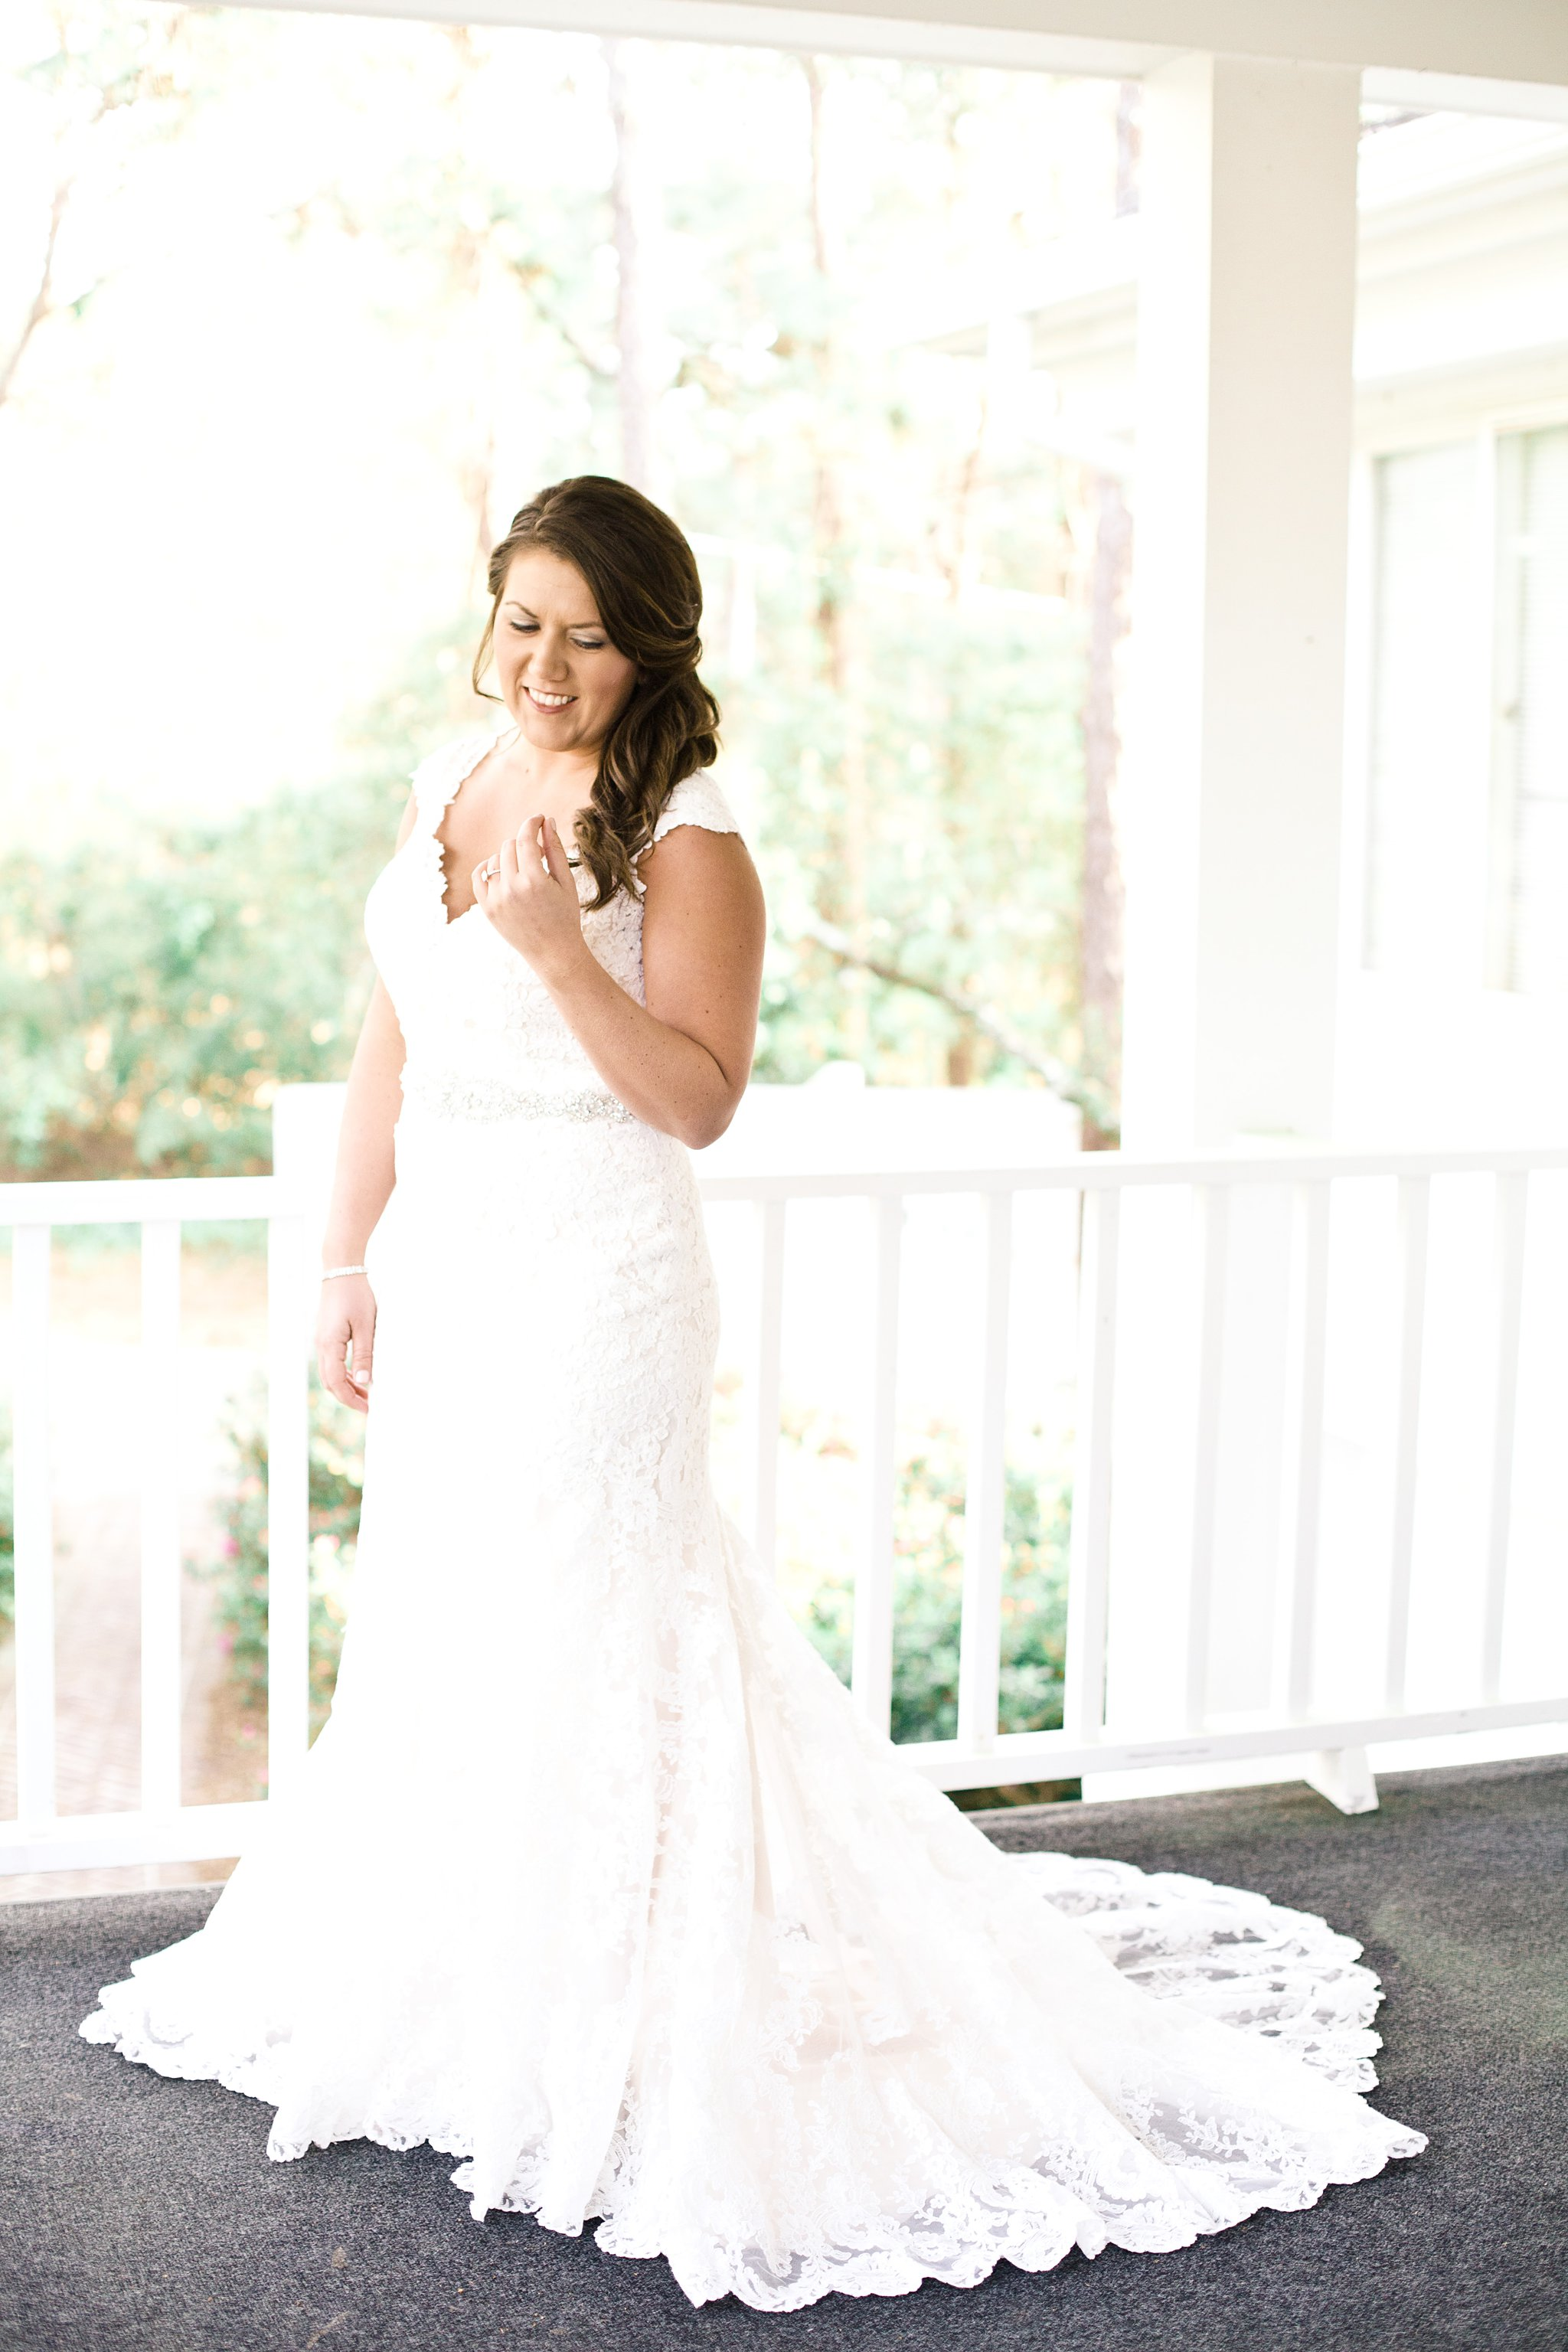 litchfield-golf-country-club-bridal-session-pawleys-island-sc-photos_0148.jpg